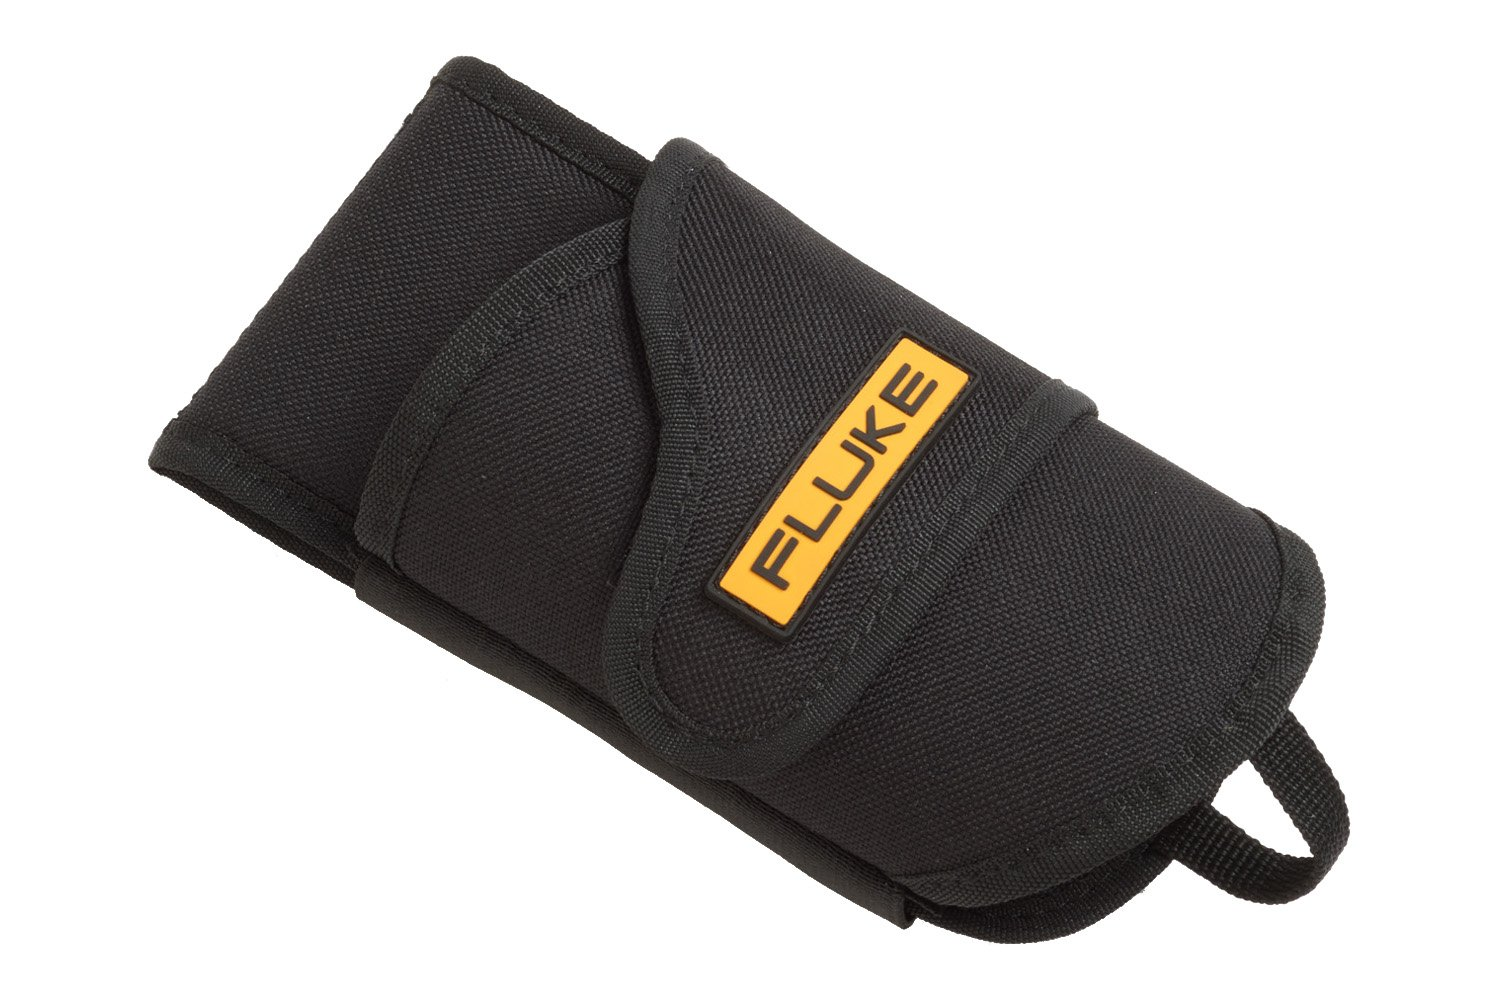 Fluke H-T6 Holster for the T6 Electrical Tester